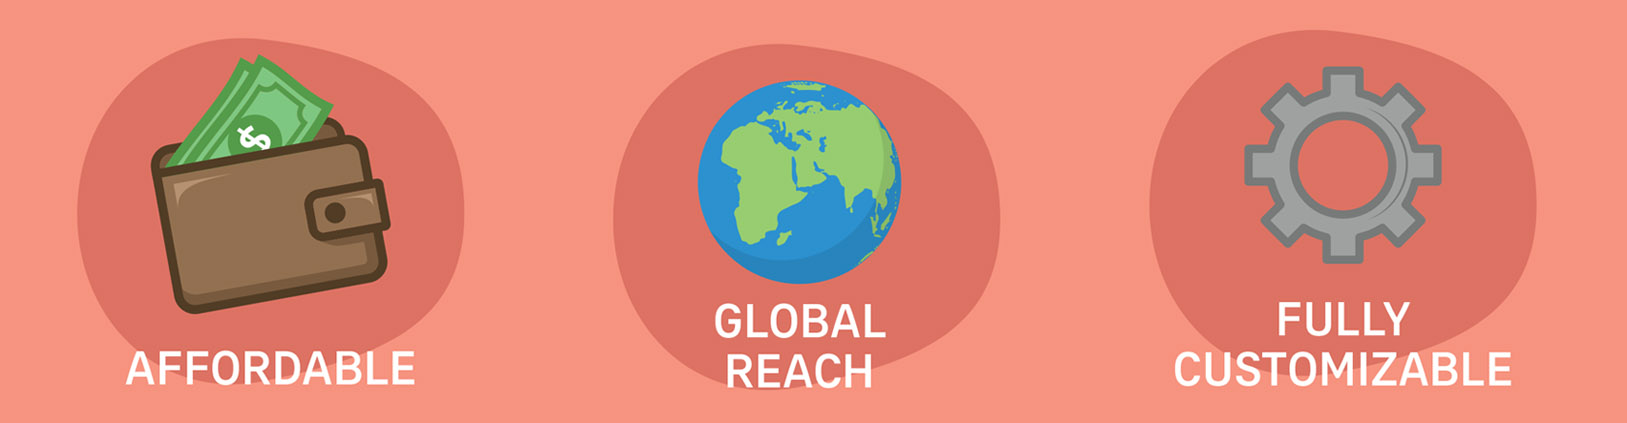 affordable, global reach, fully customizable